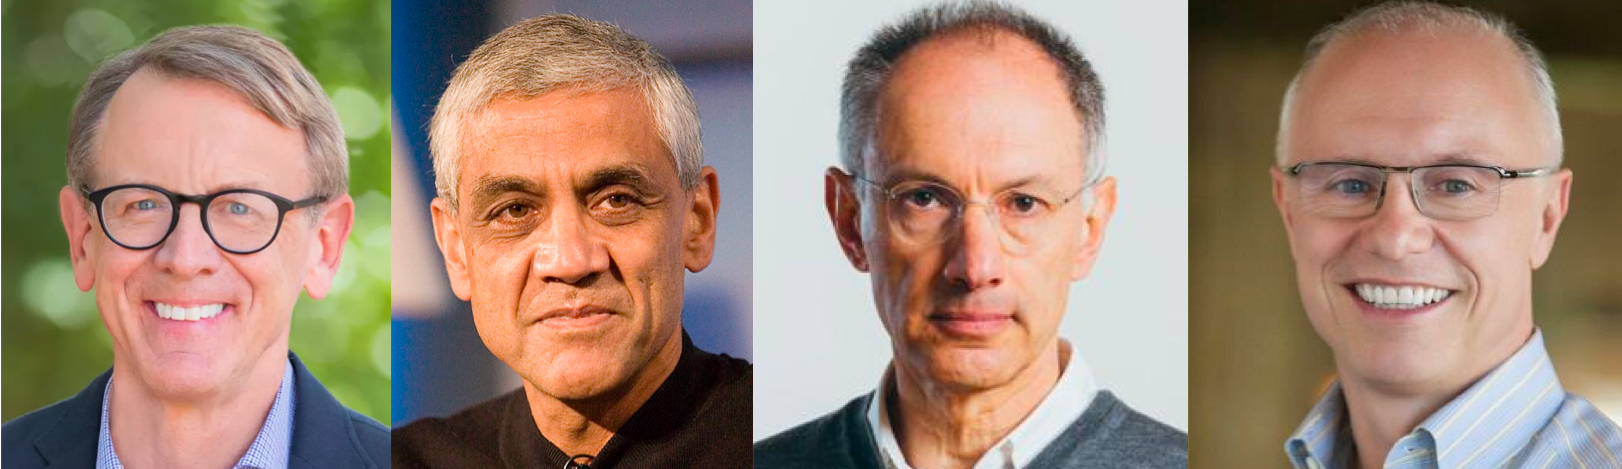 From left to right: John Doerr, Vinod Khosla, Michael Moritz, Doug Leone